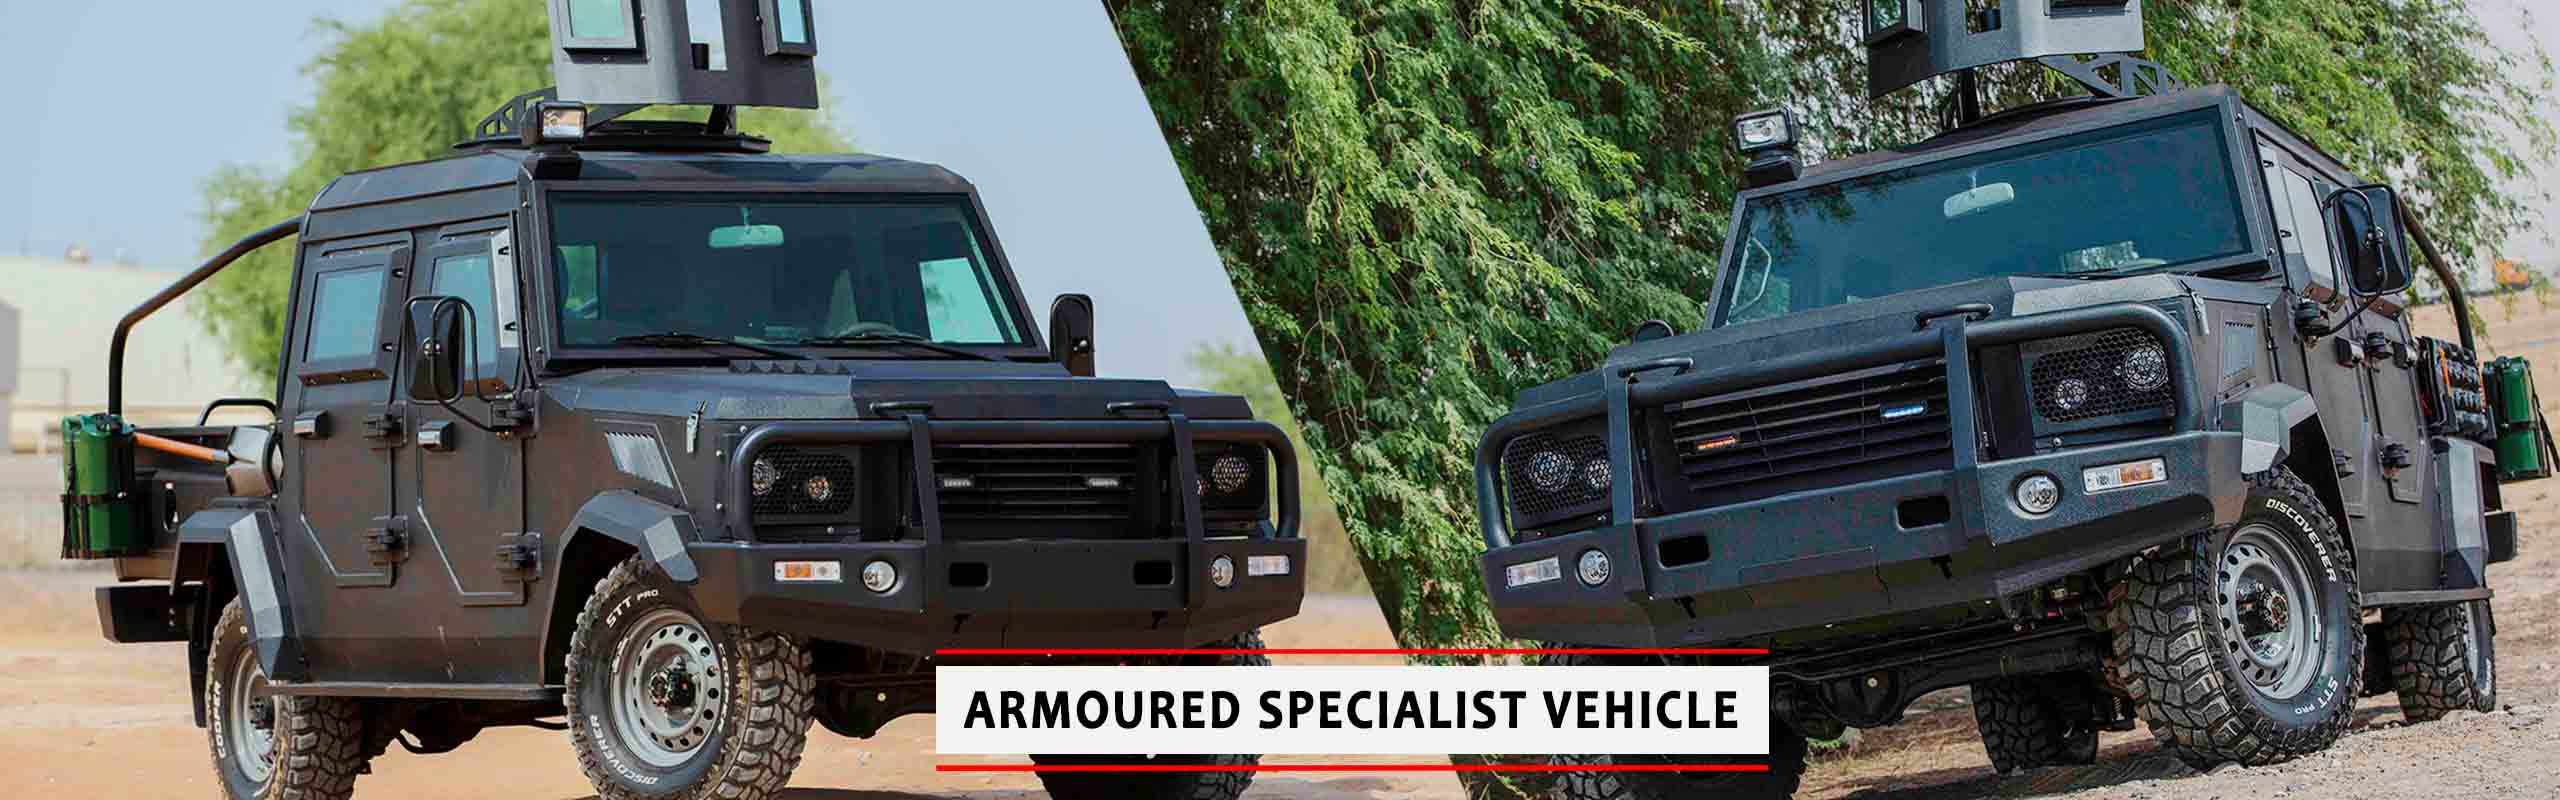 Mahindra Armoured Vehicles UAE - Jordan| Armoured Specialist Vehicle